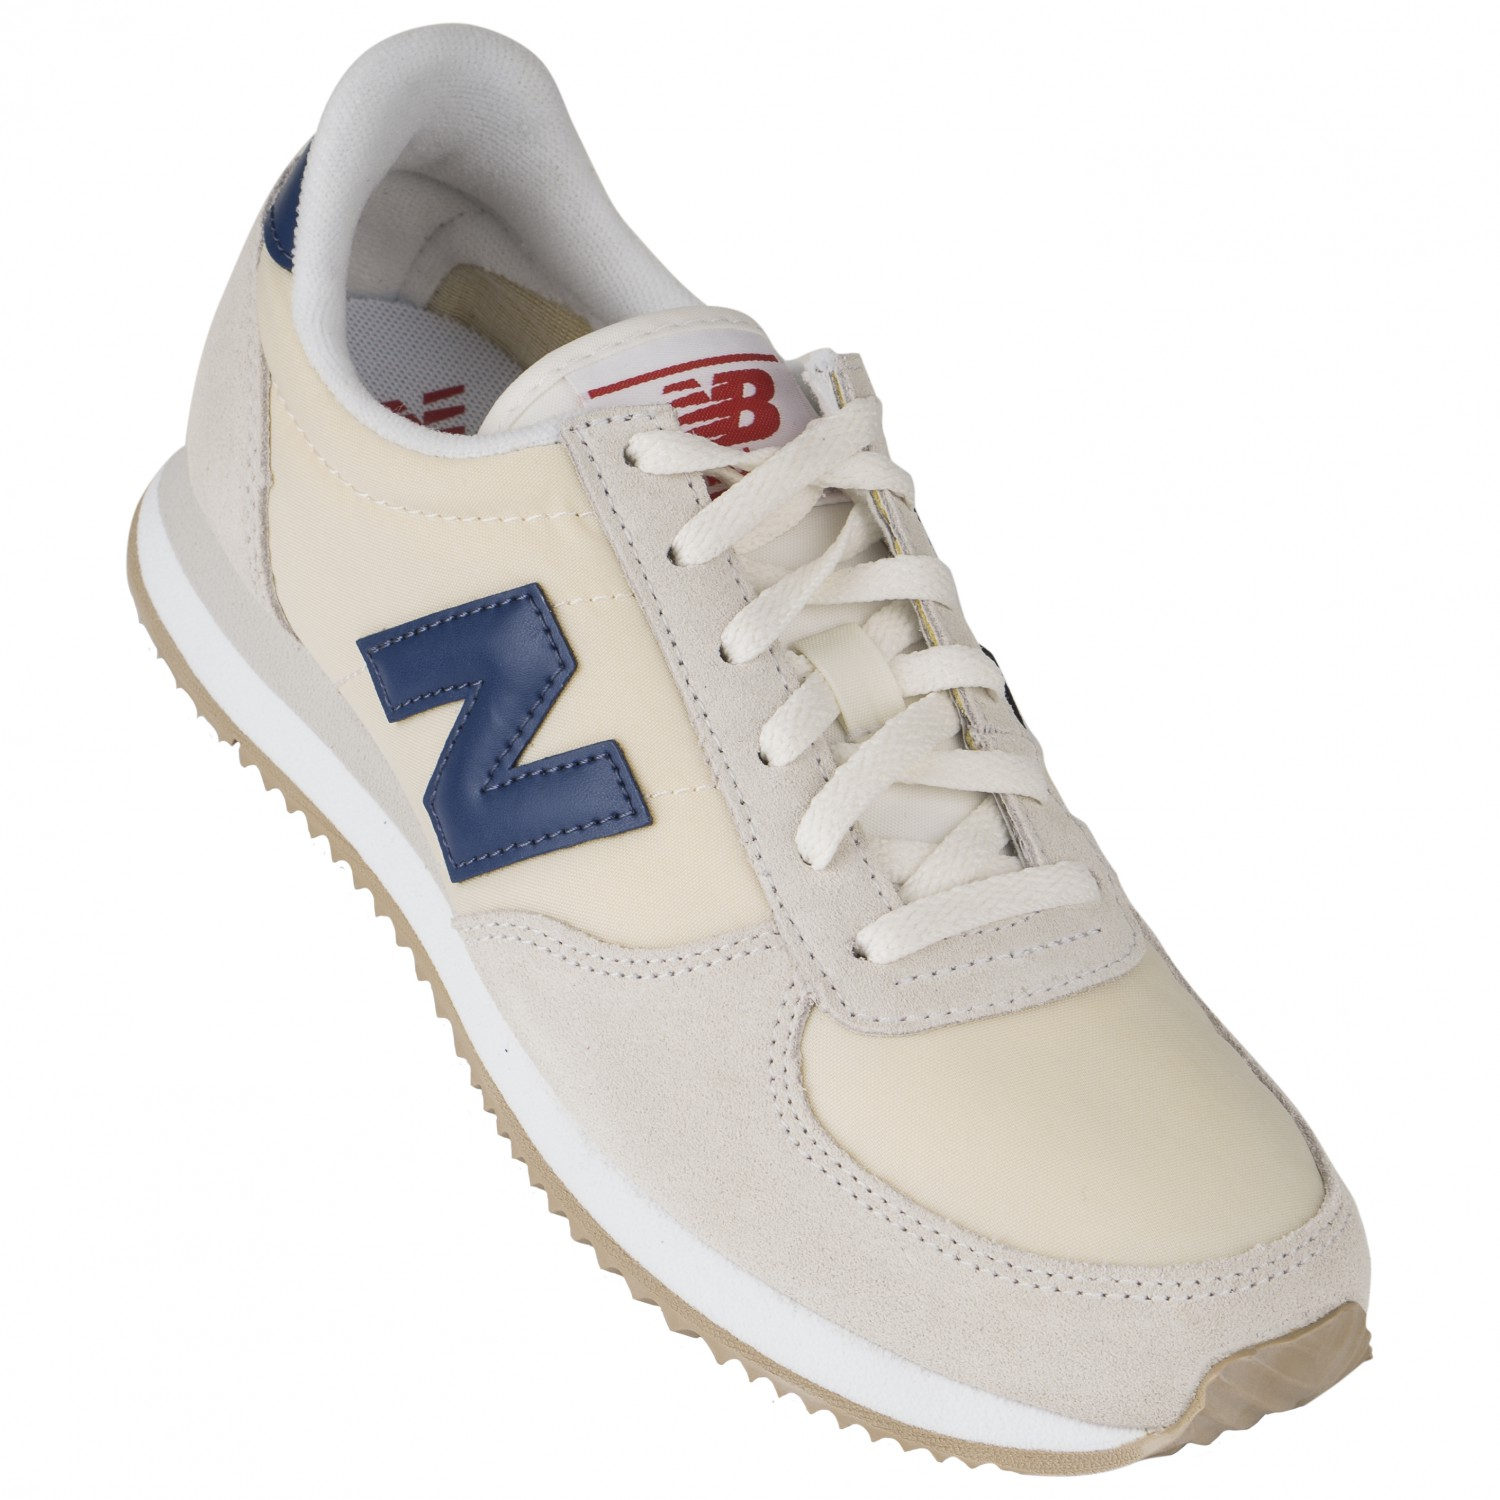 New Balance - Women's 220 - Sneaker - Blue | 6,5 (US)